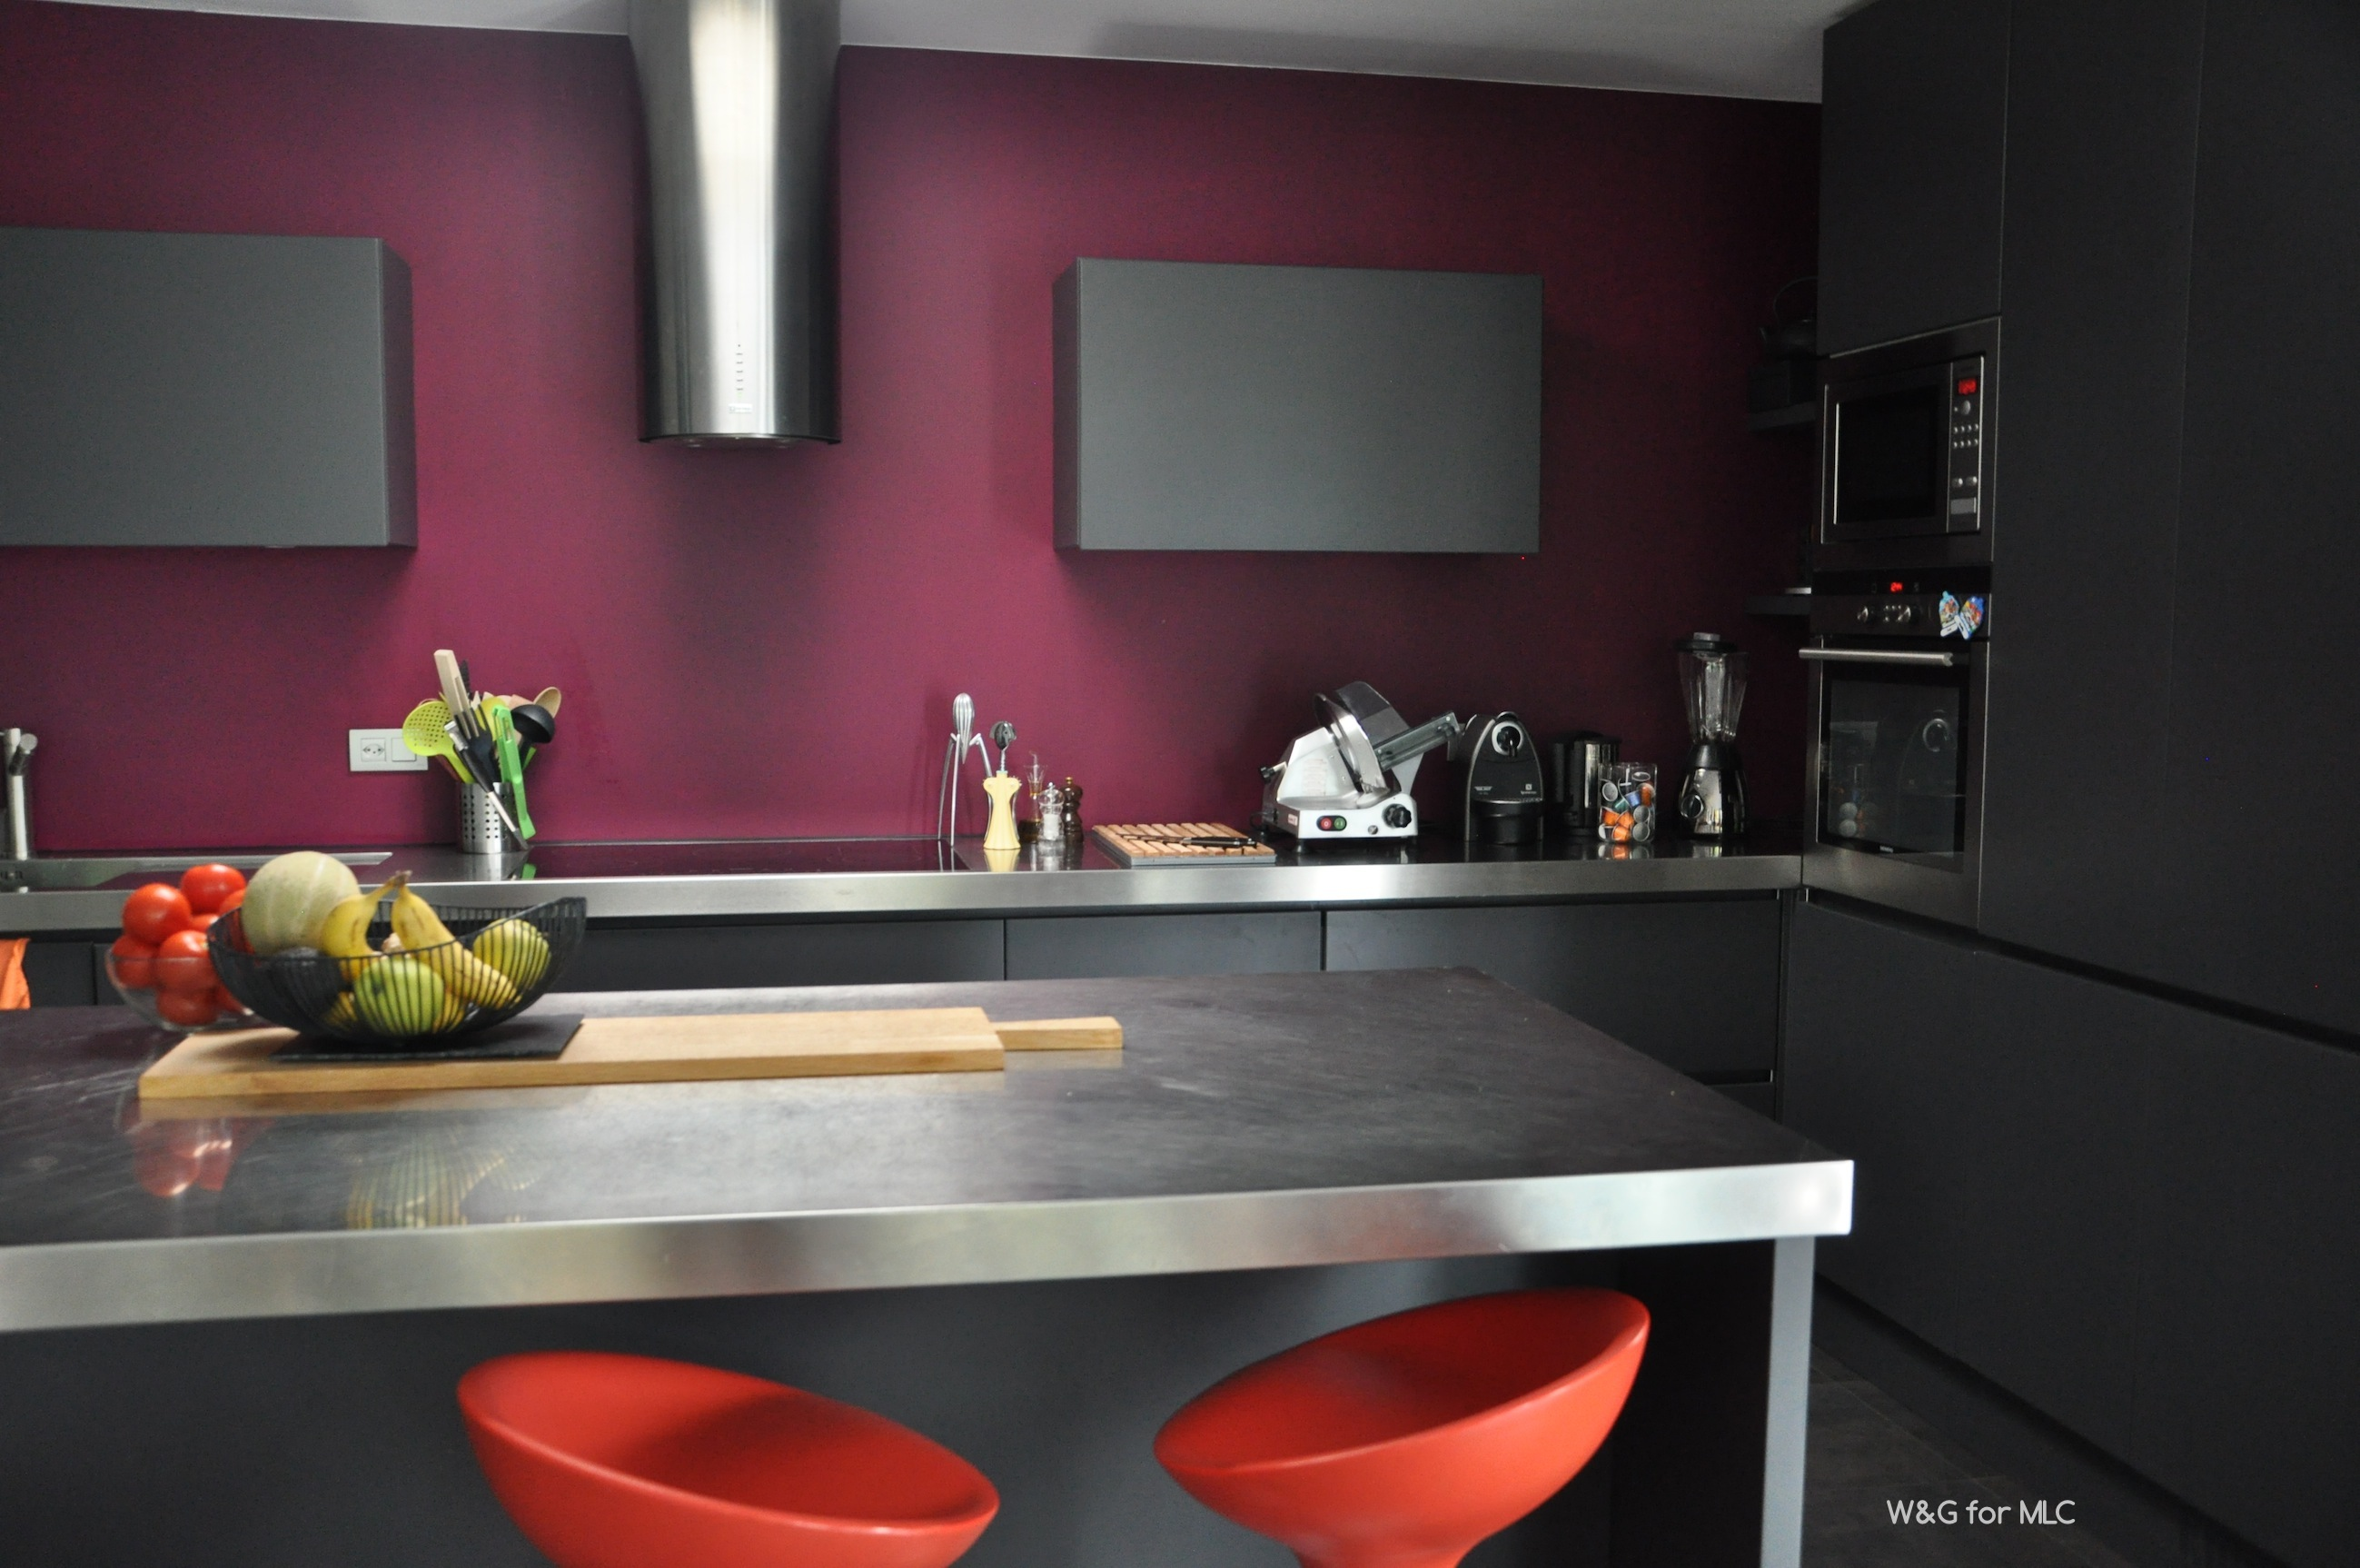 Cuisine anthracite sur fond fushia archives le blog d co for Design decoration interieur